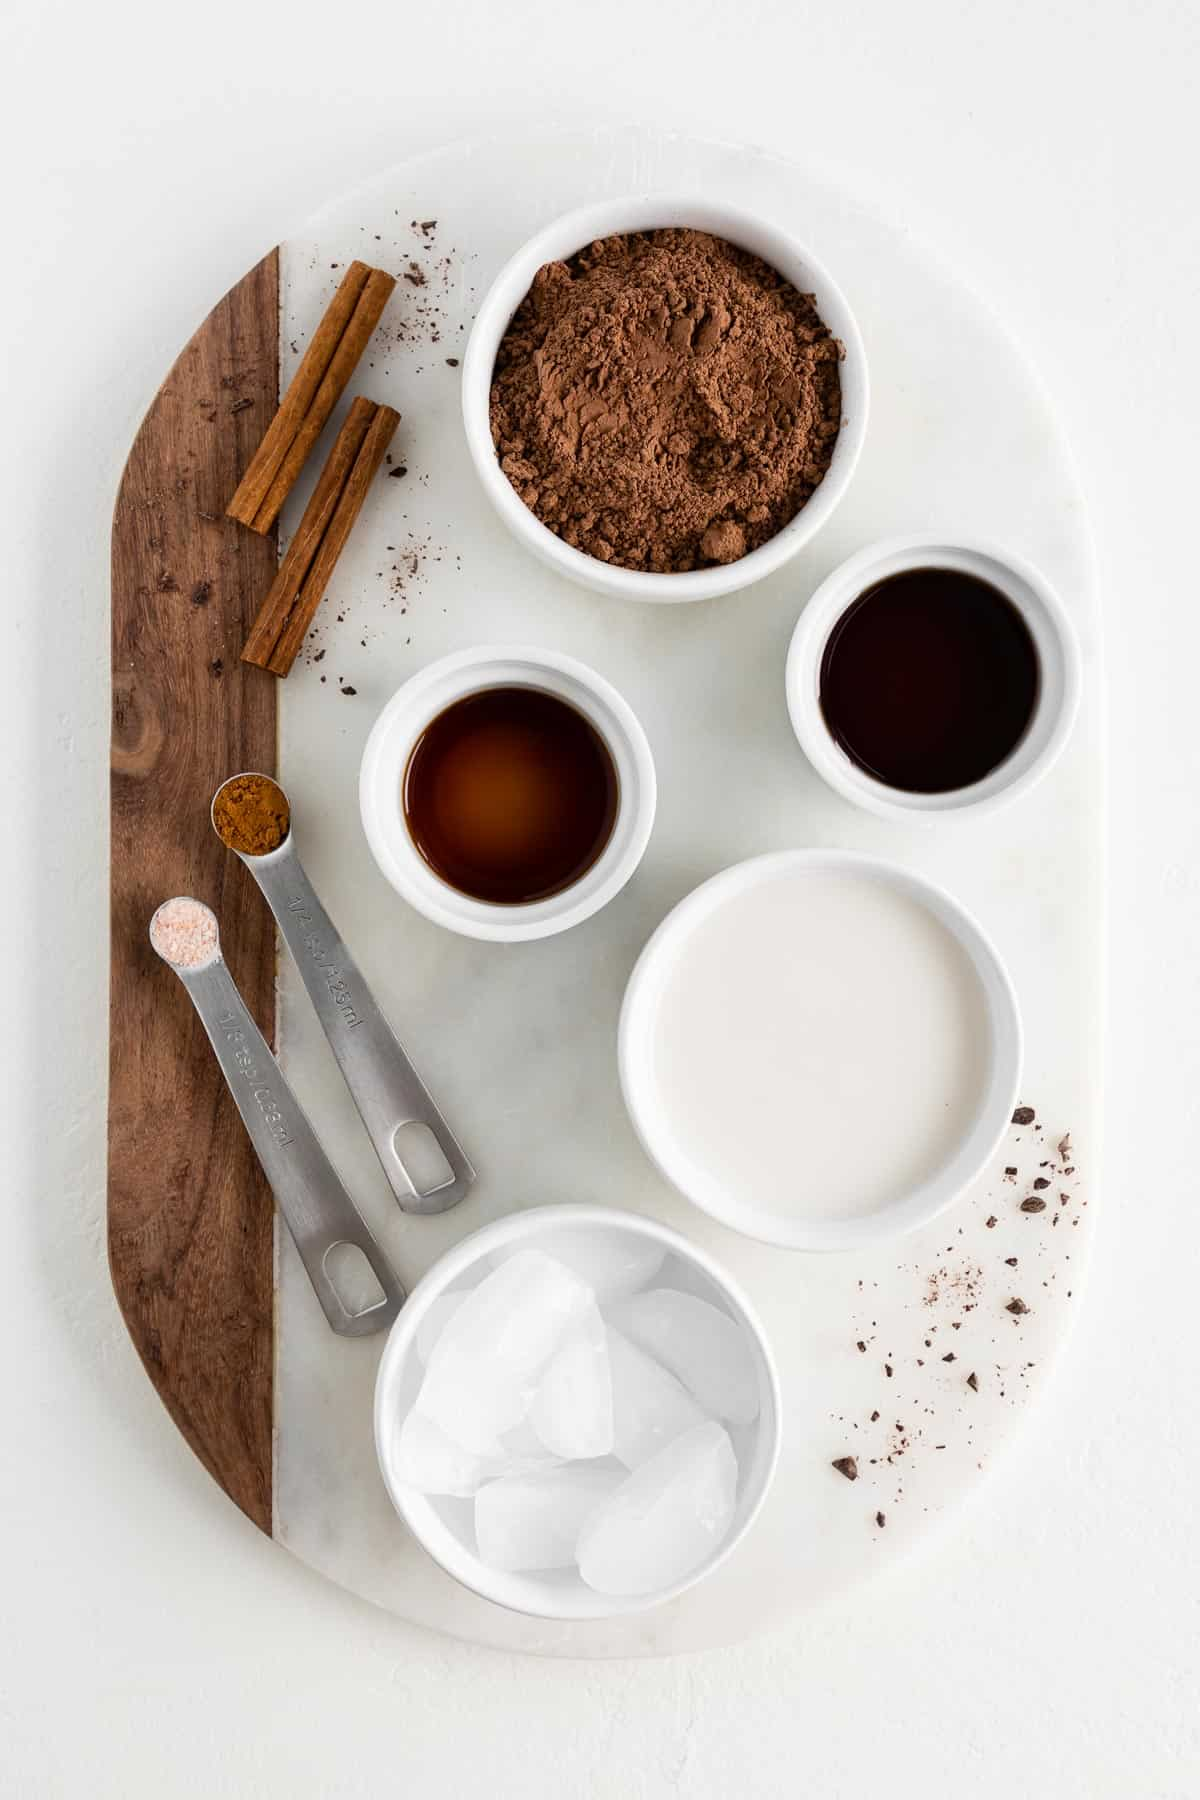 a marble and wood cutting board topped with bowls of cocoa powder, vanilla extract, maple syrup, almond milk, ice cubes, and cinnamon